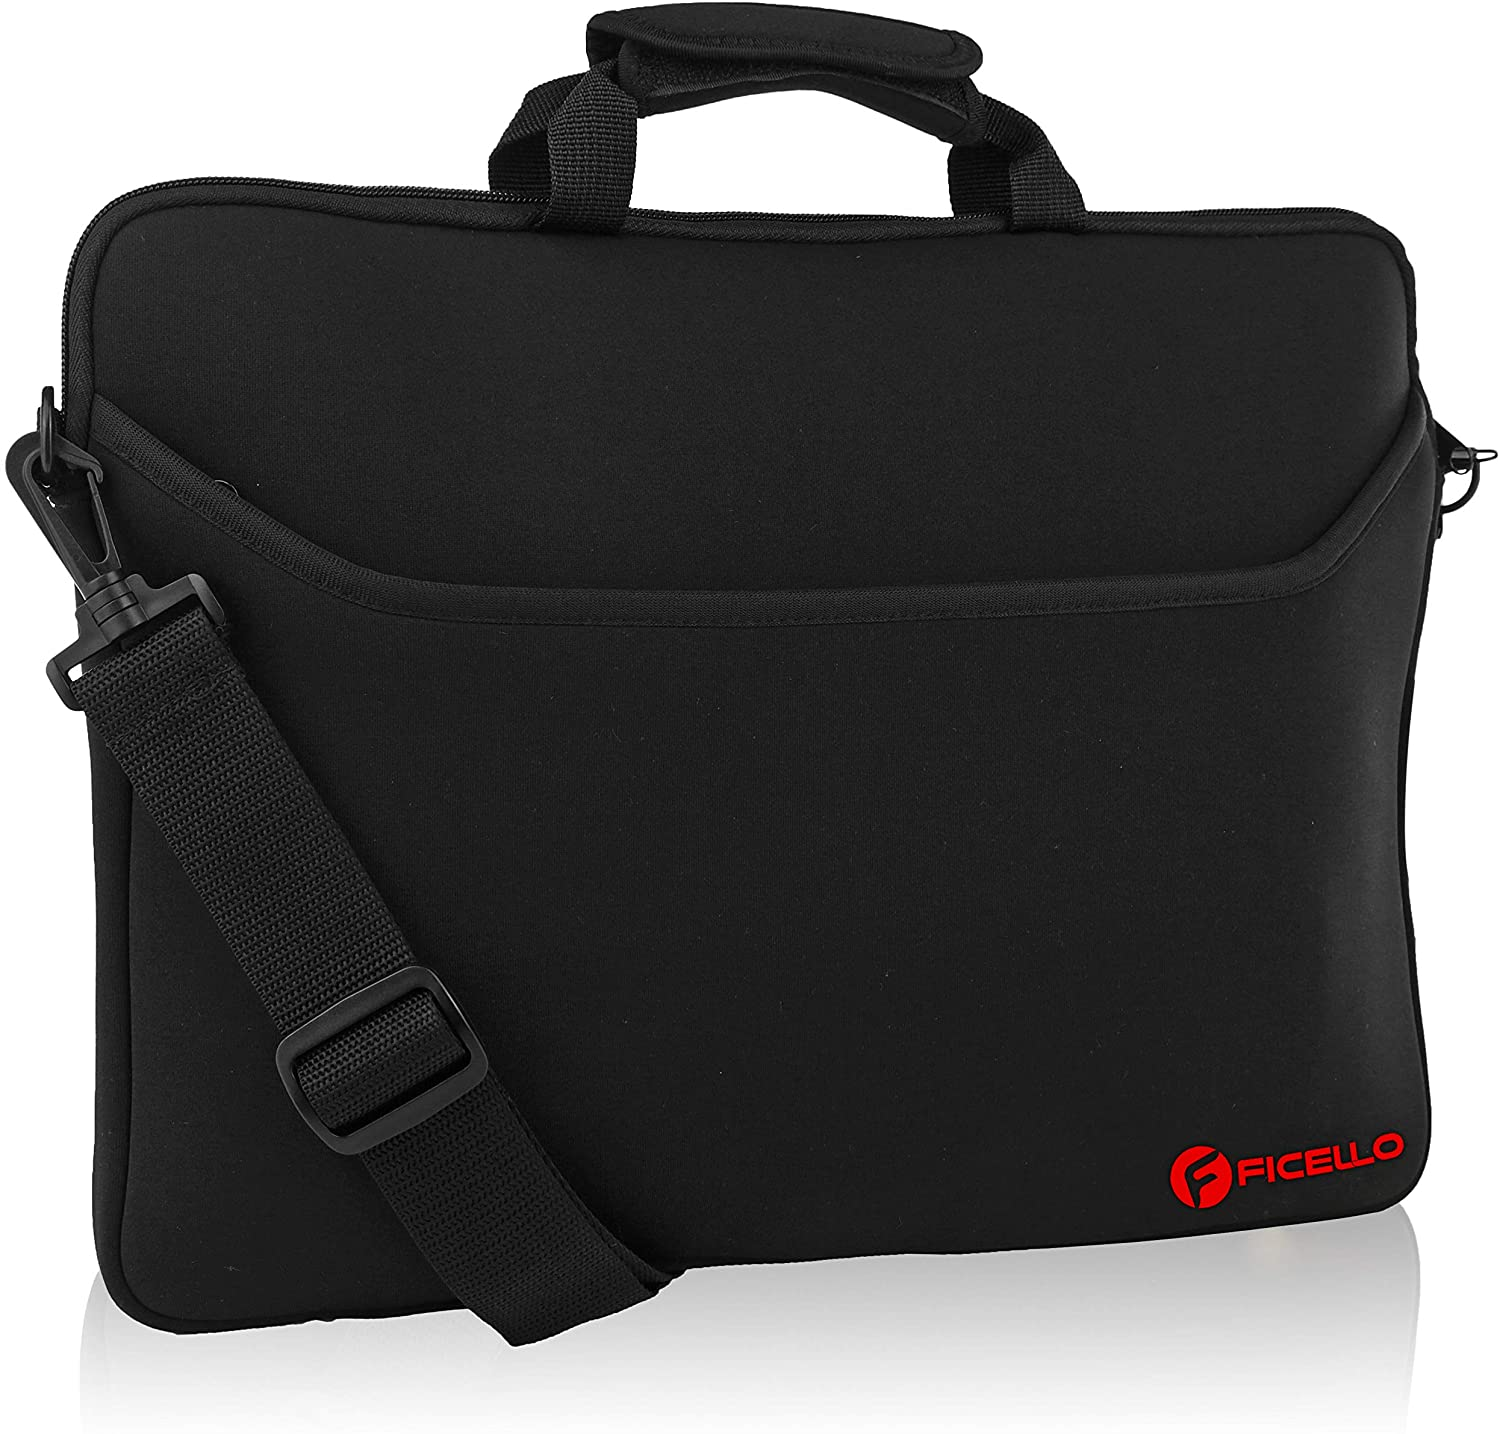 FICELLO 15.6 Inch Laptop Case, Laptop Carrying Bag with Shoulder Strap, Water-Resistant Neoprene Sleeve, Used for Acer/Asus/Dell/Lenovo/HP - Men, Women & Kids, Business Casual or School (Black)